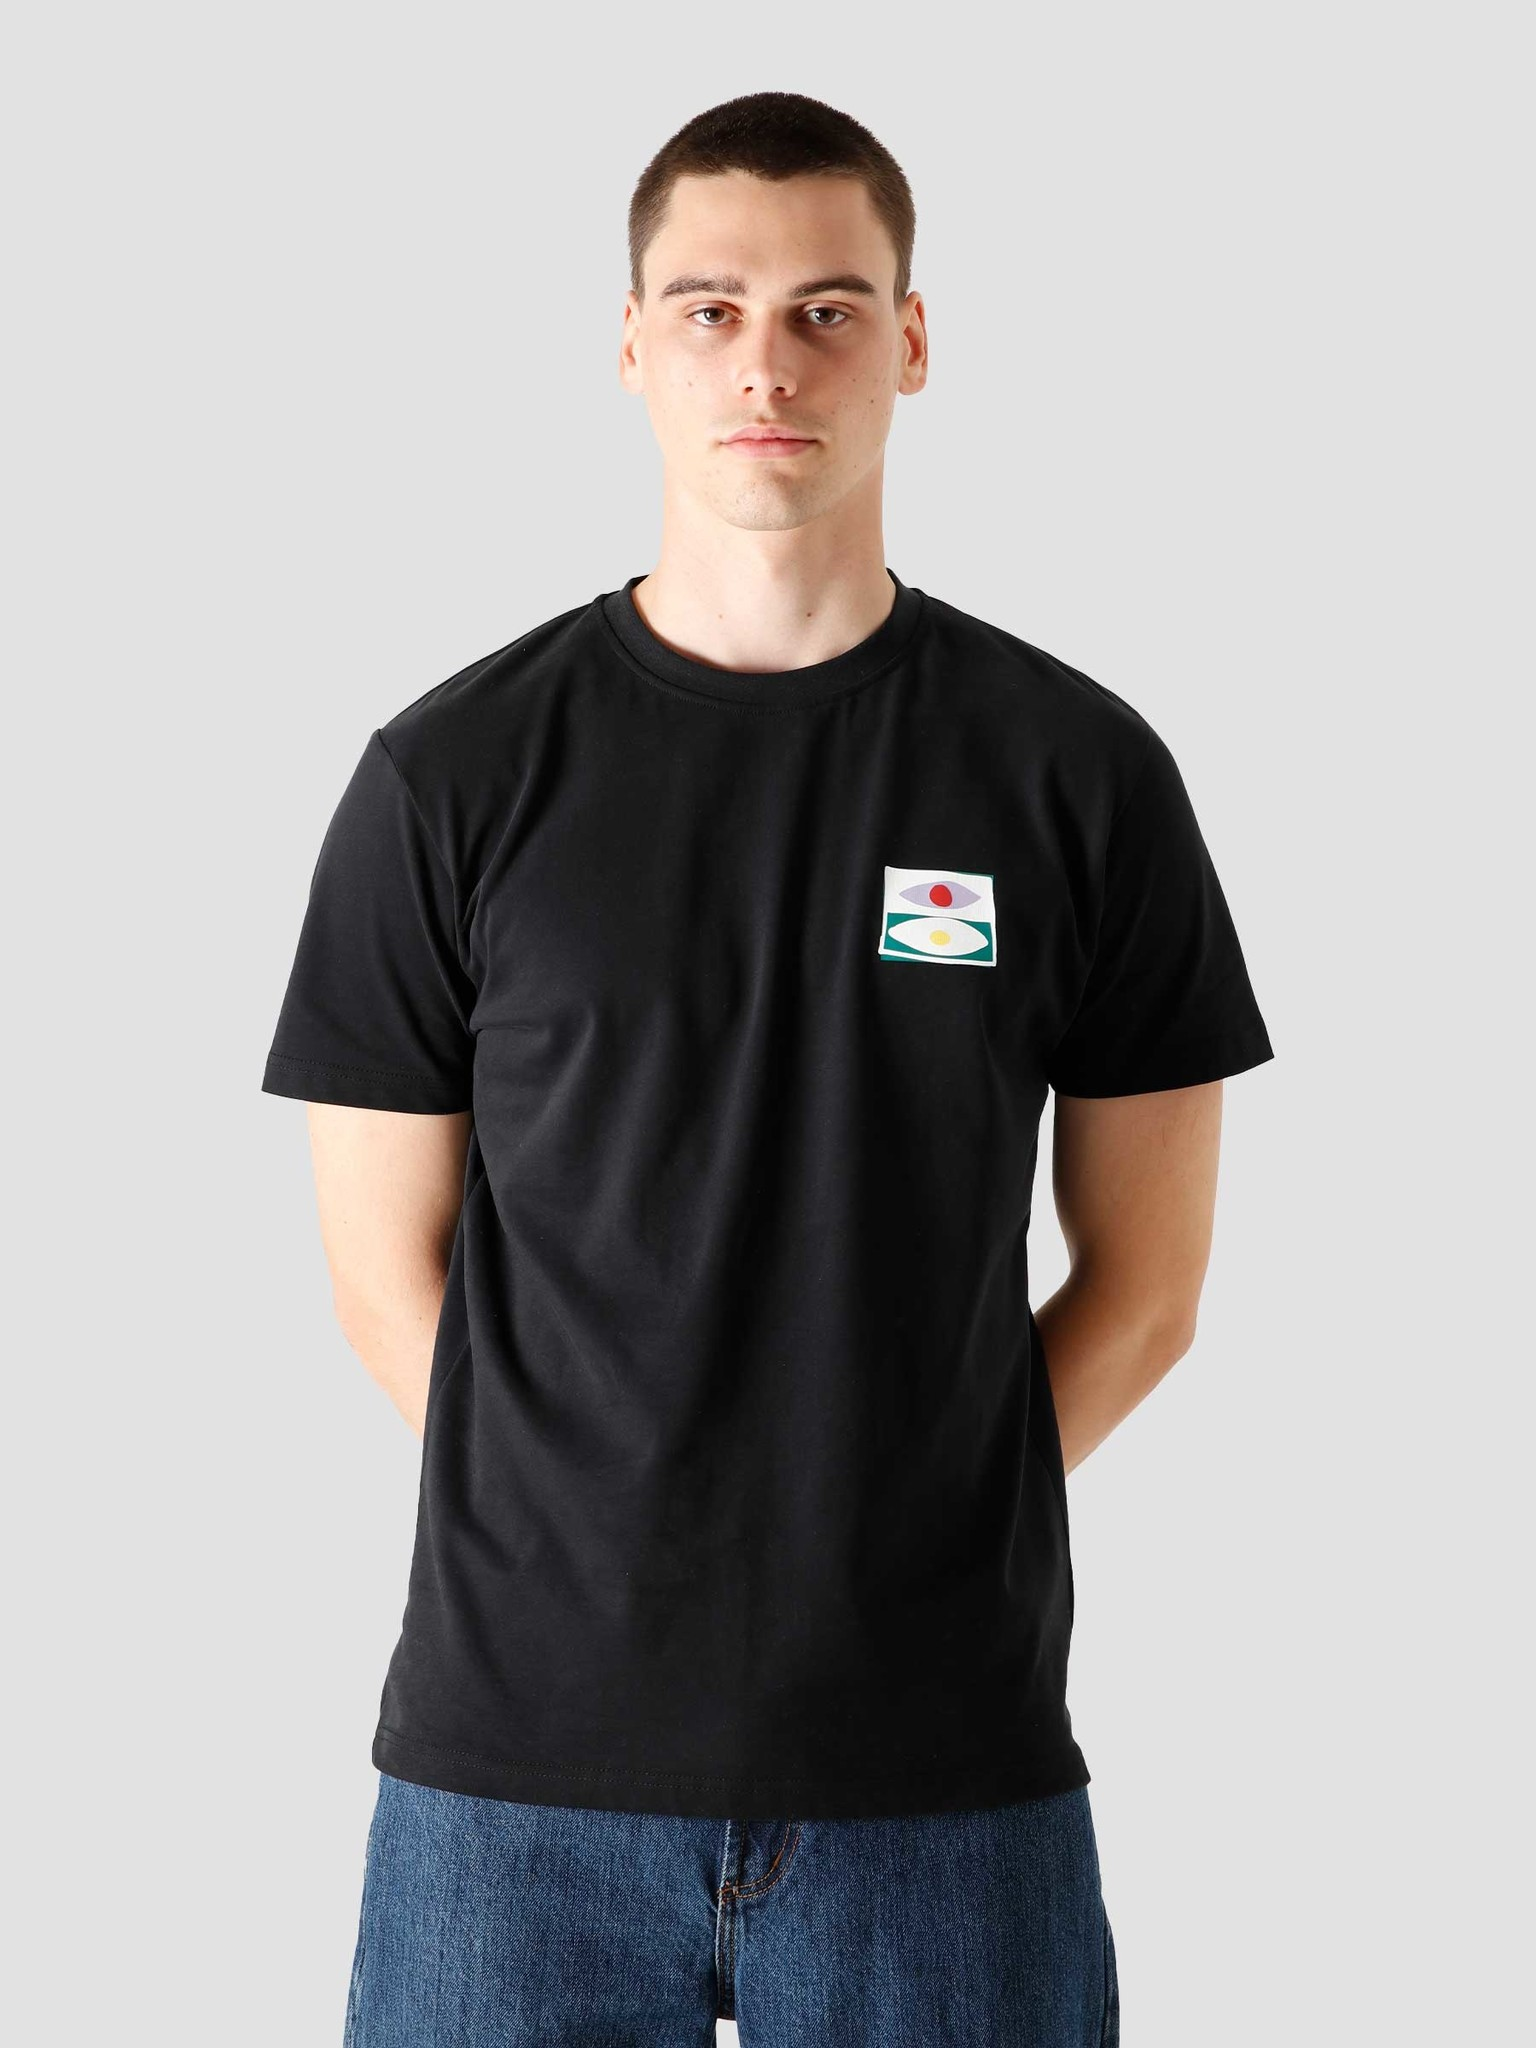 FRESHCOTTON FreshCotton Out Of Sight T-shirt Black